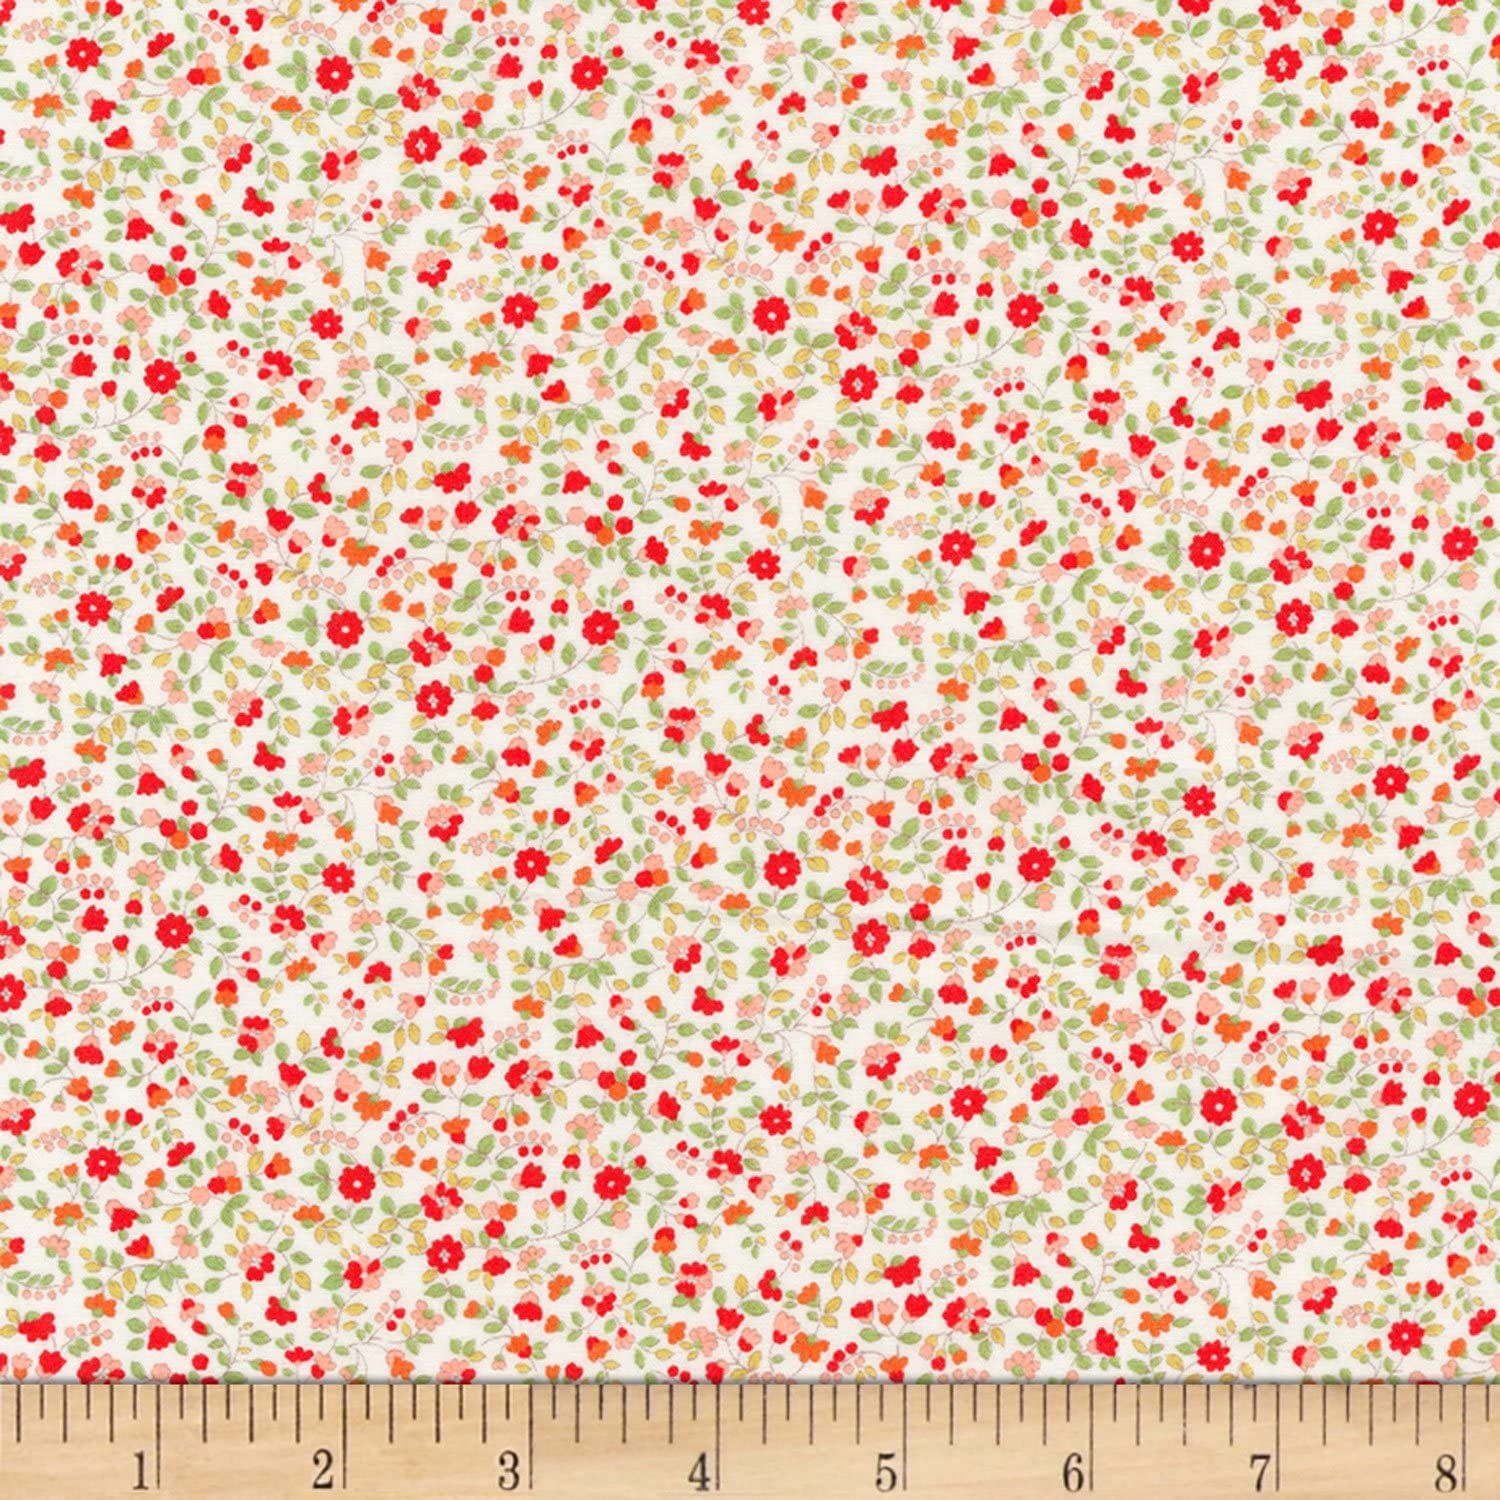 Kaufman Sevenberry: Petite Garden Lawn Flowers Red Fabric by The Yard